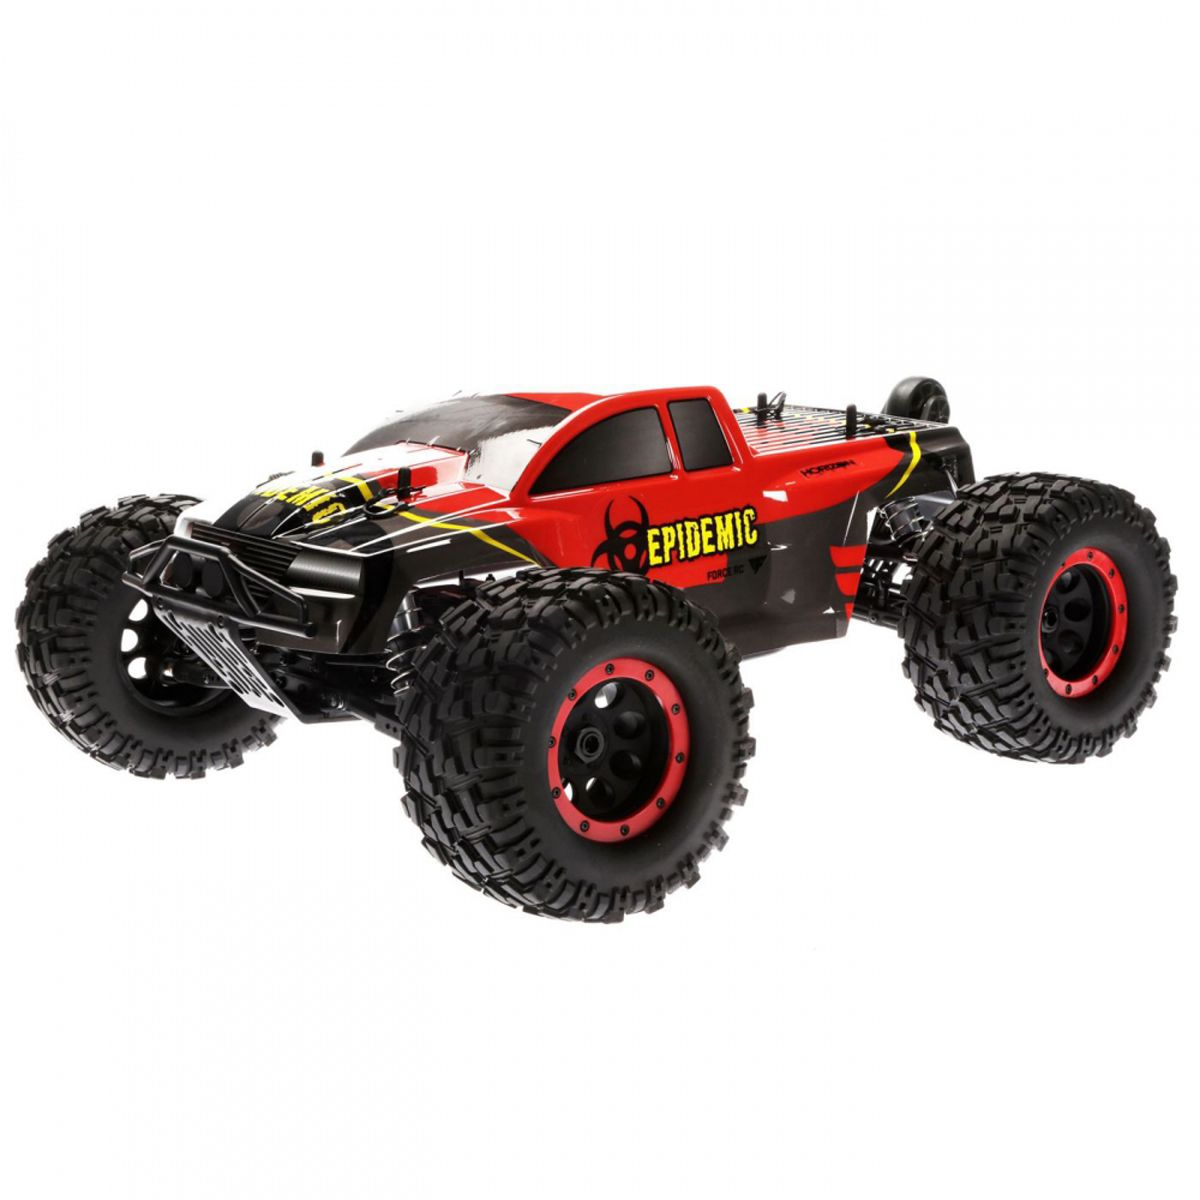 08f11a51f8 Details about Force RC 1 8 Epidemic 4 Wheel Drive Monster Truck Brushless  Ready to Run